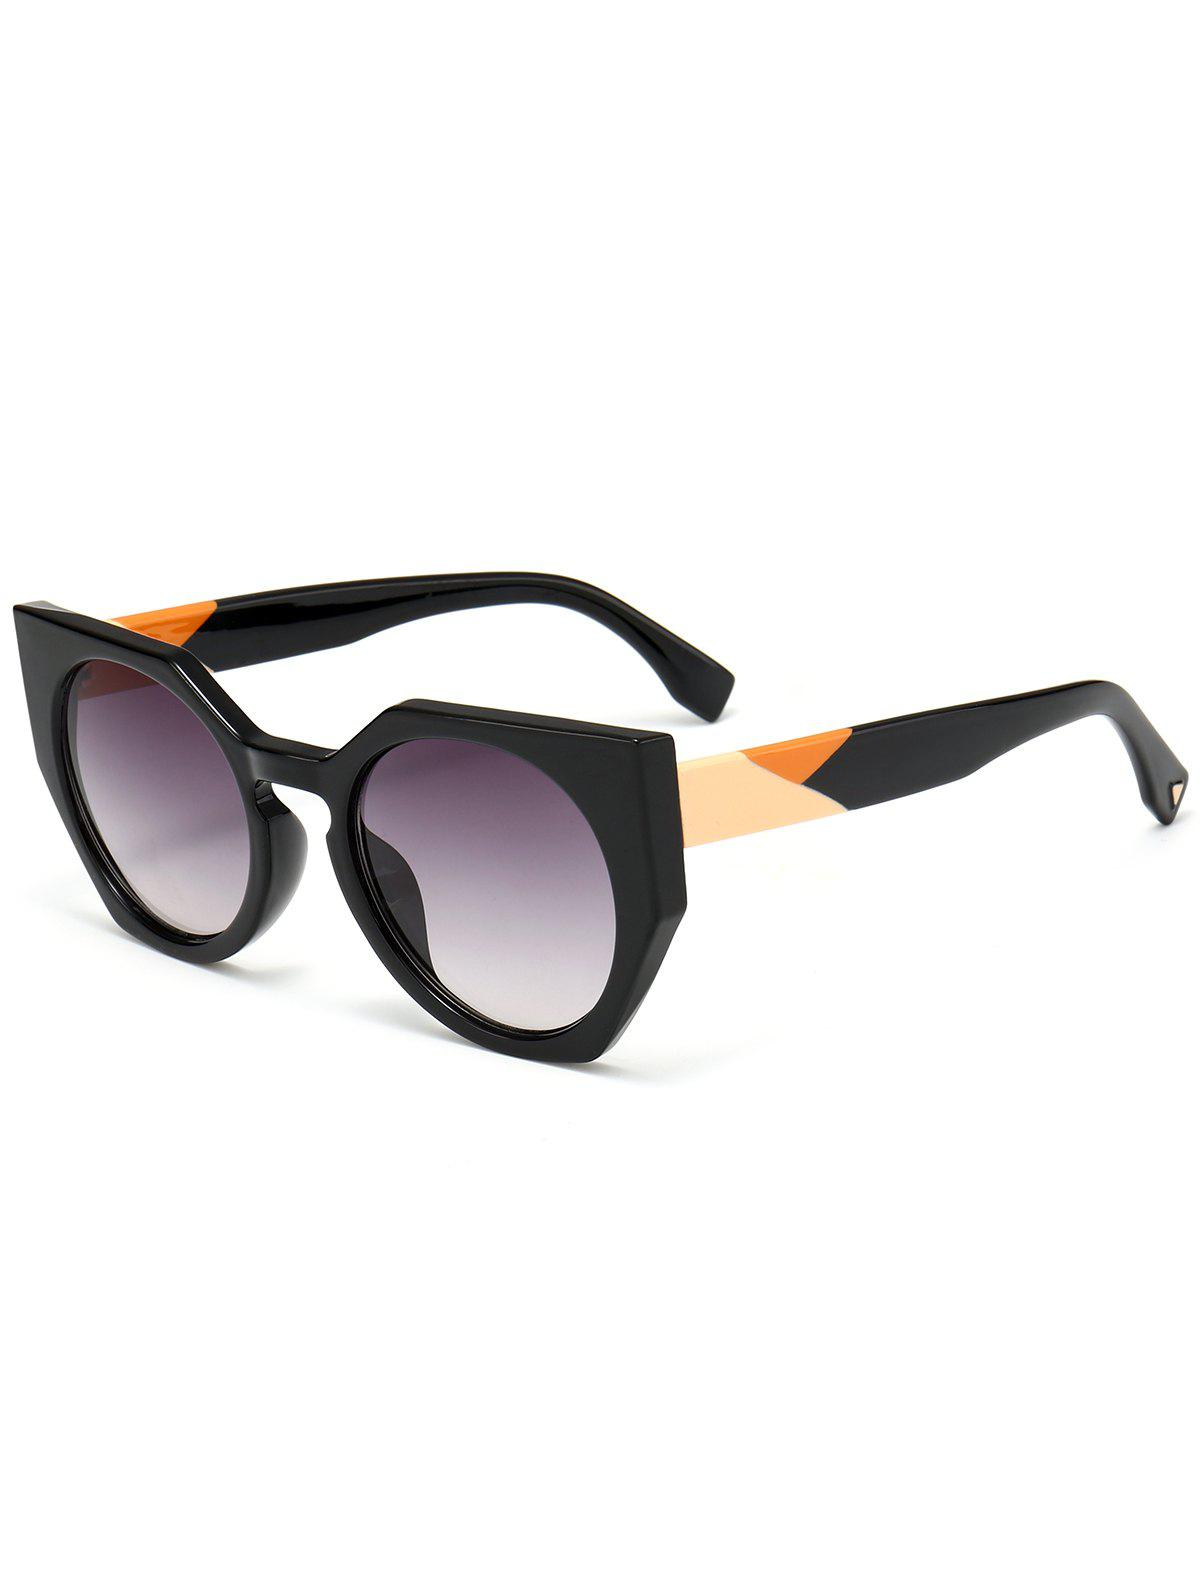 Outdoor Full Rim Butterfly Sunglasses - GRAY